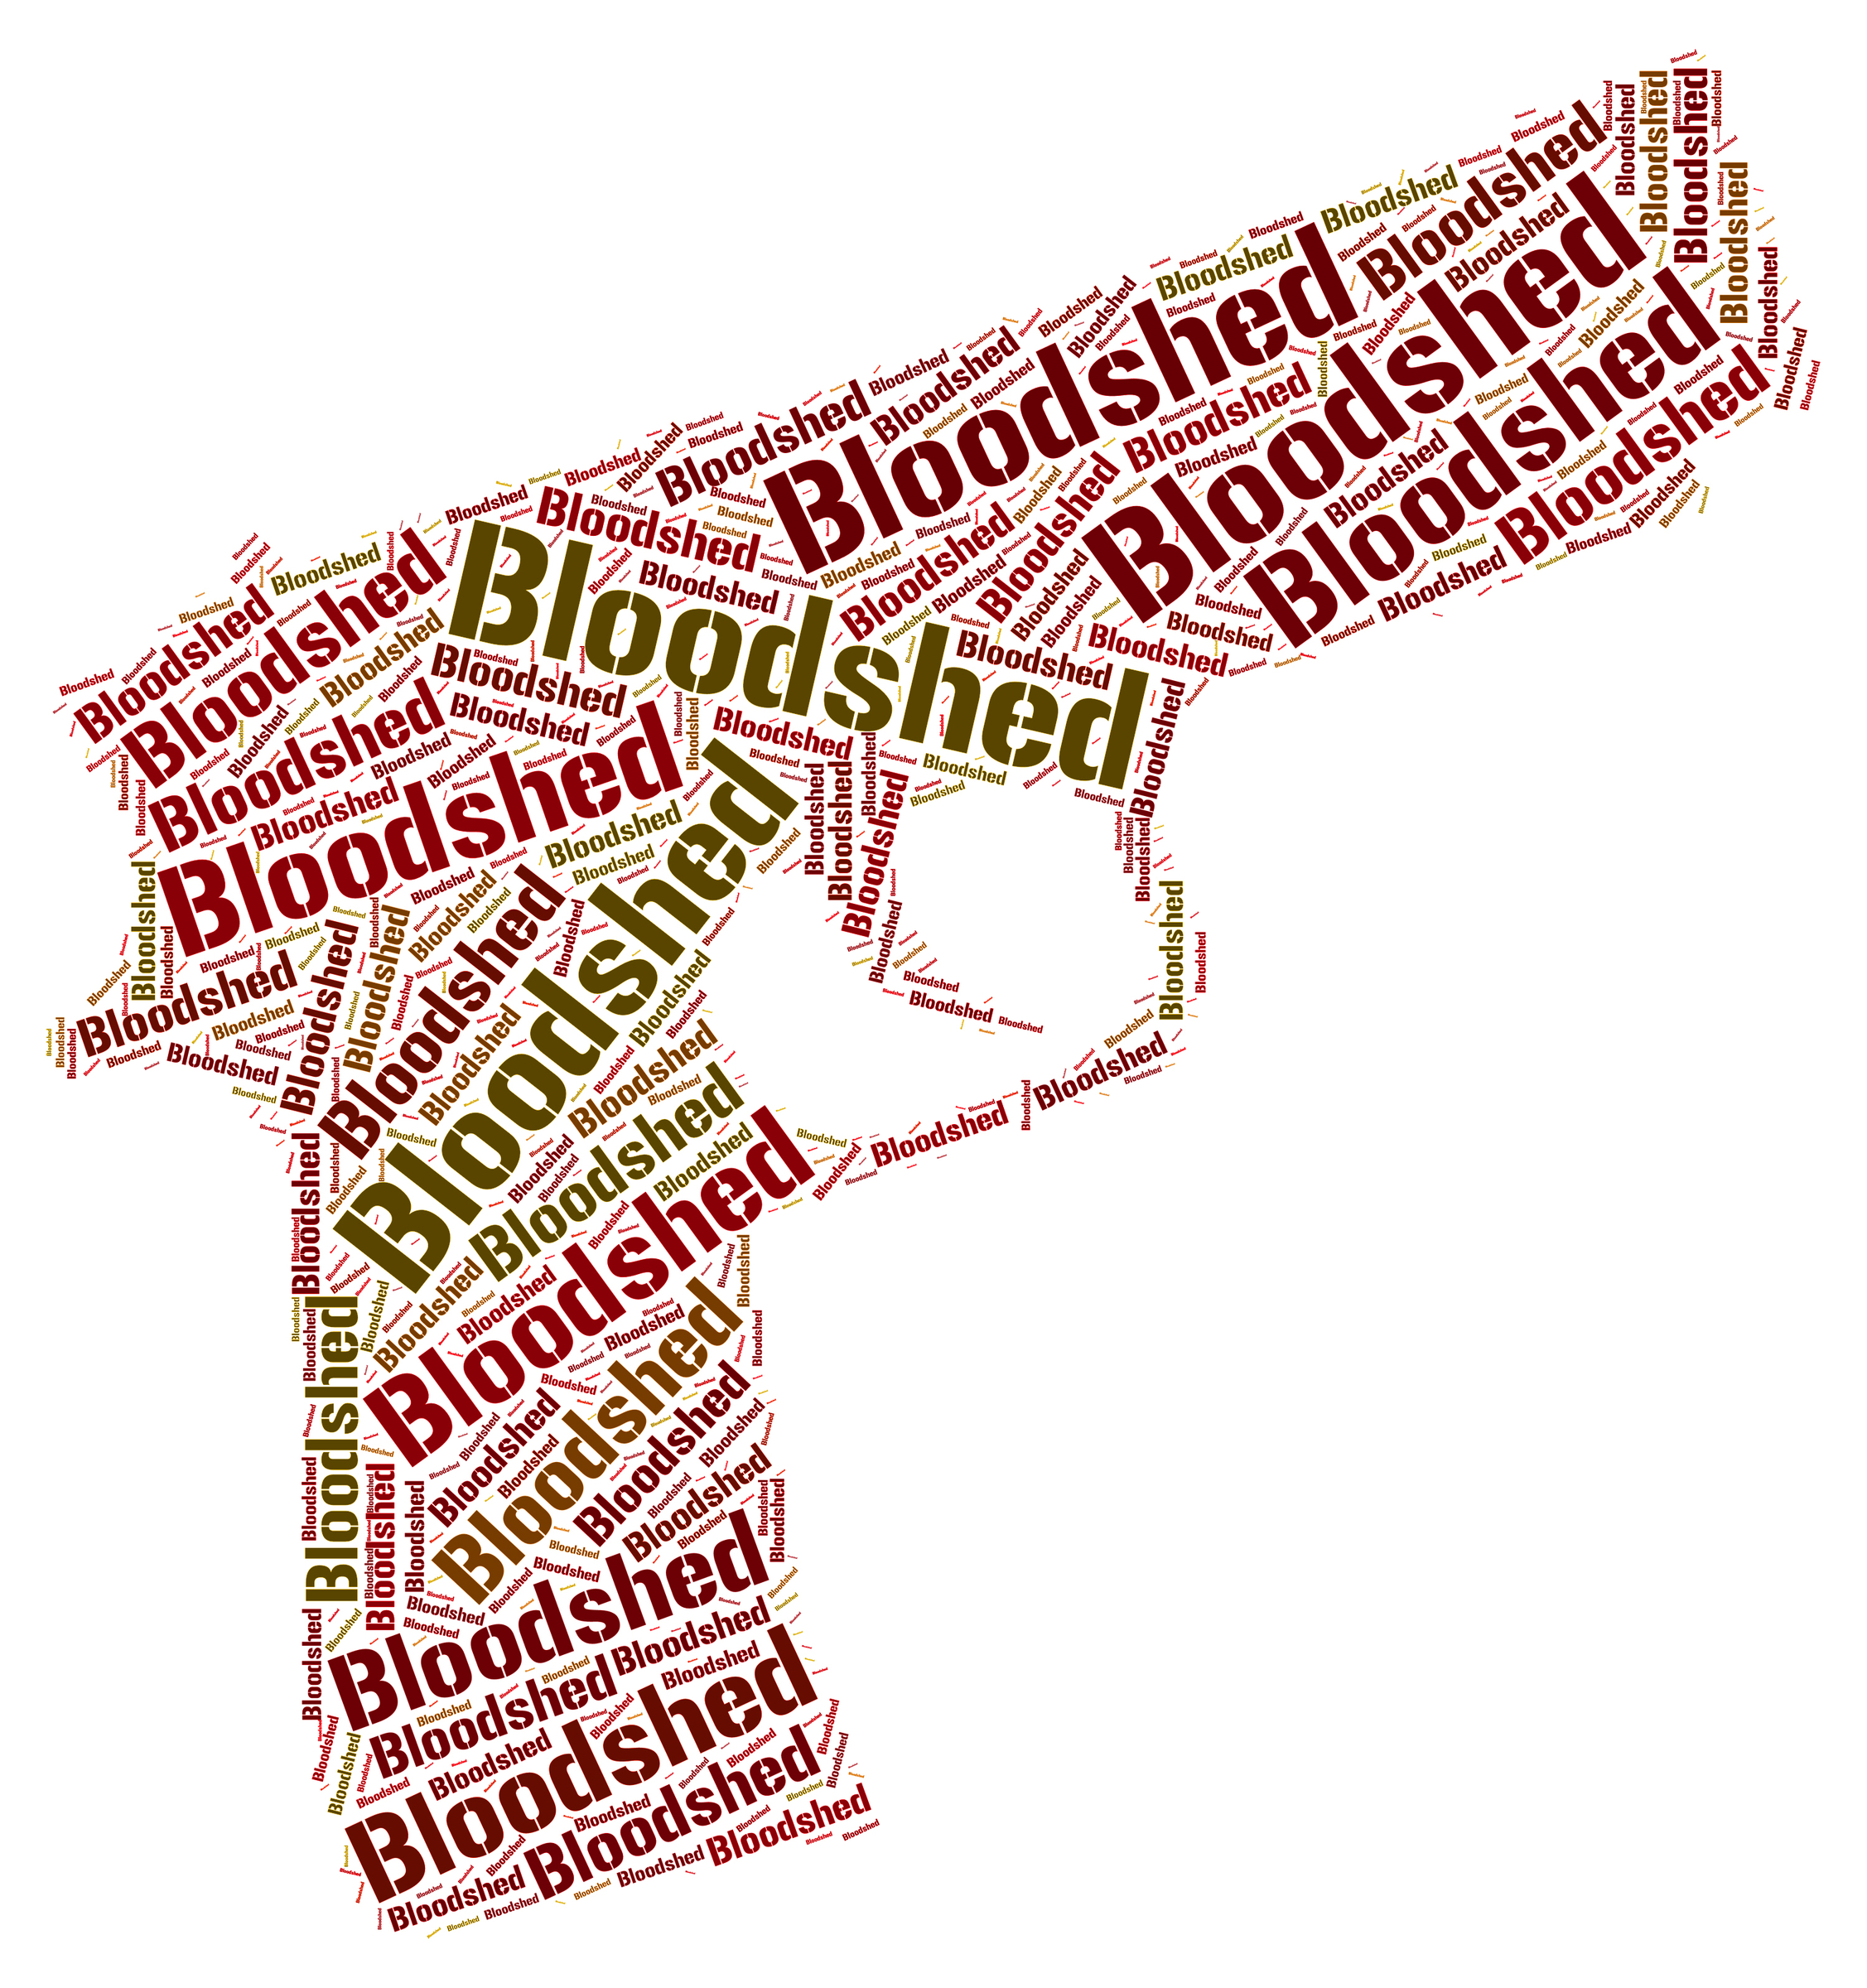 Bloodshed Word Represents Wordclouds Bloodletting And Fighting